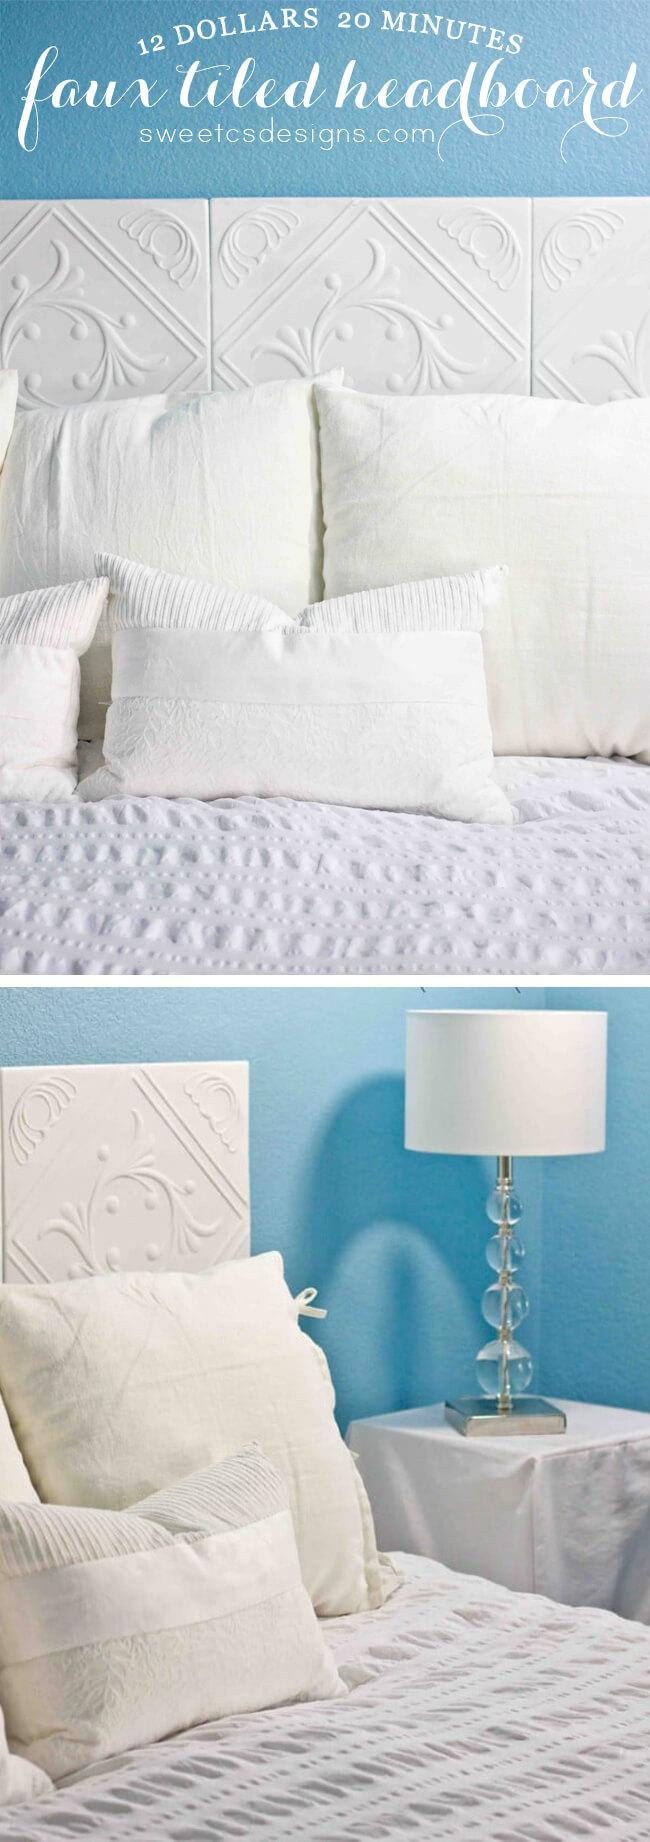 Tiled for Style Headboard Idea